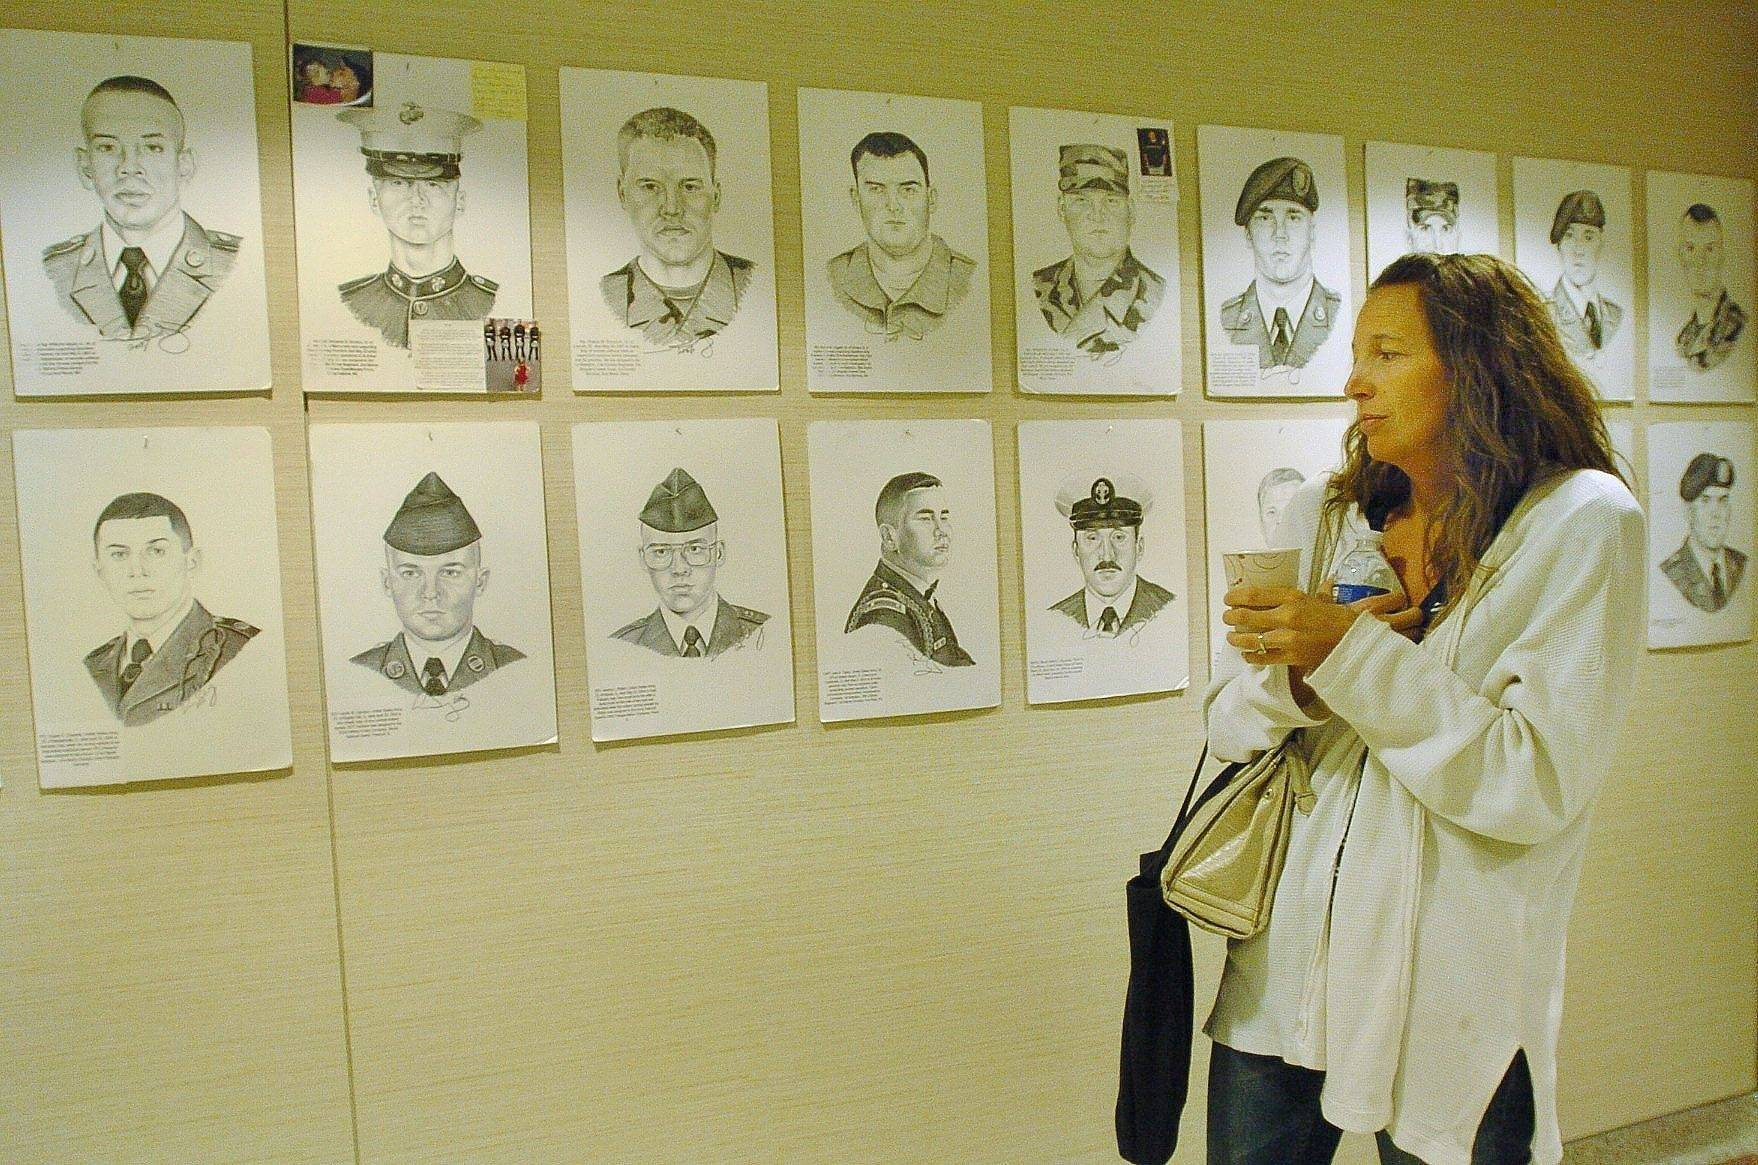 Elk Grove hospital hosts faces of those lost to war on terror